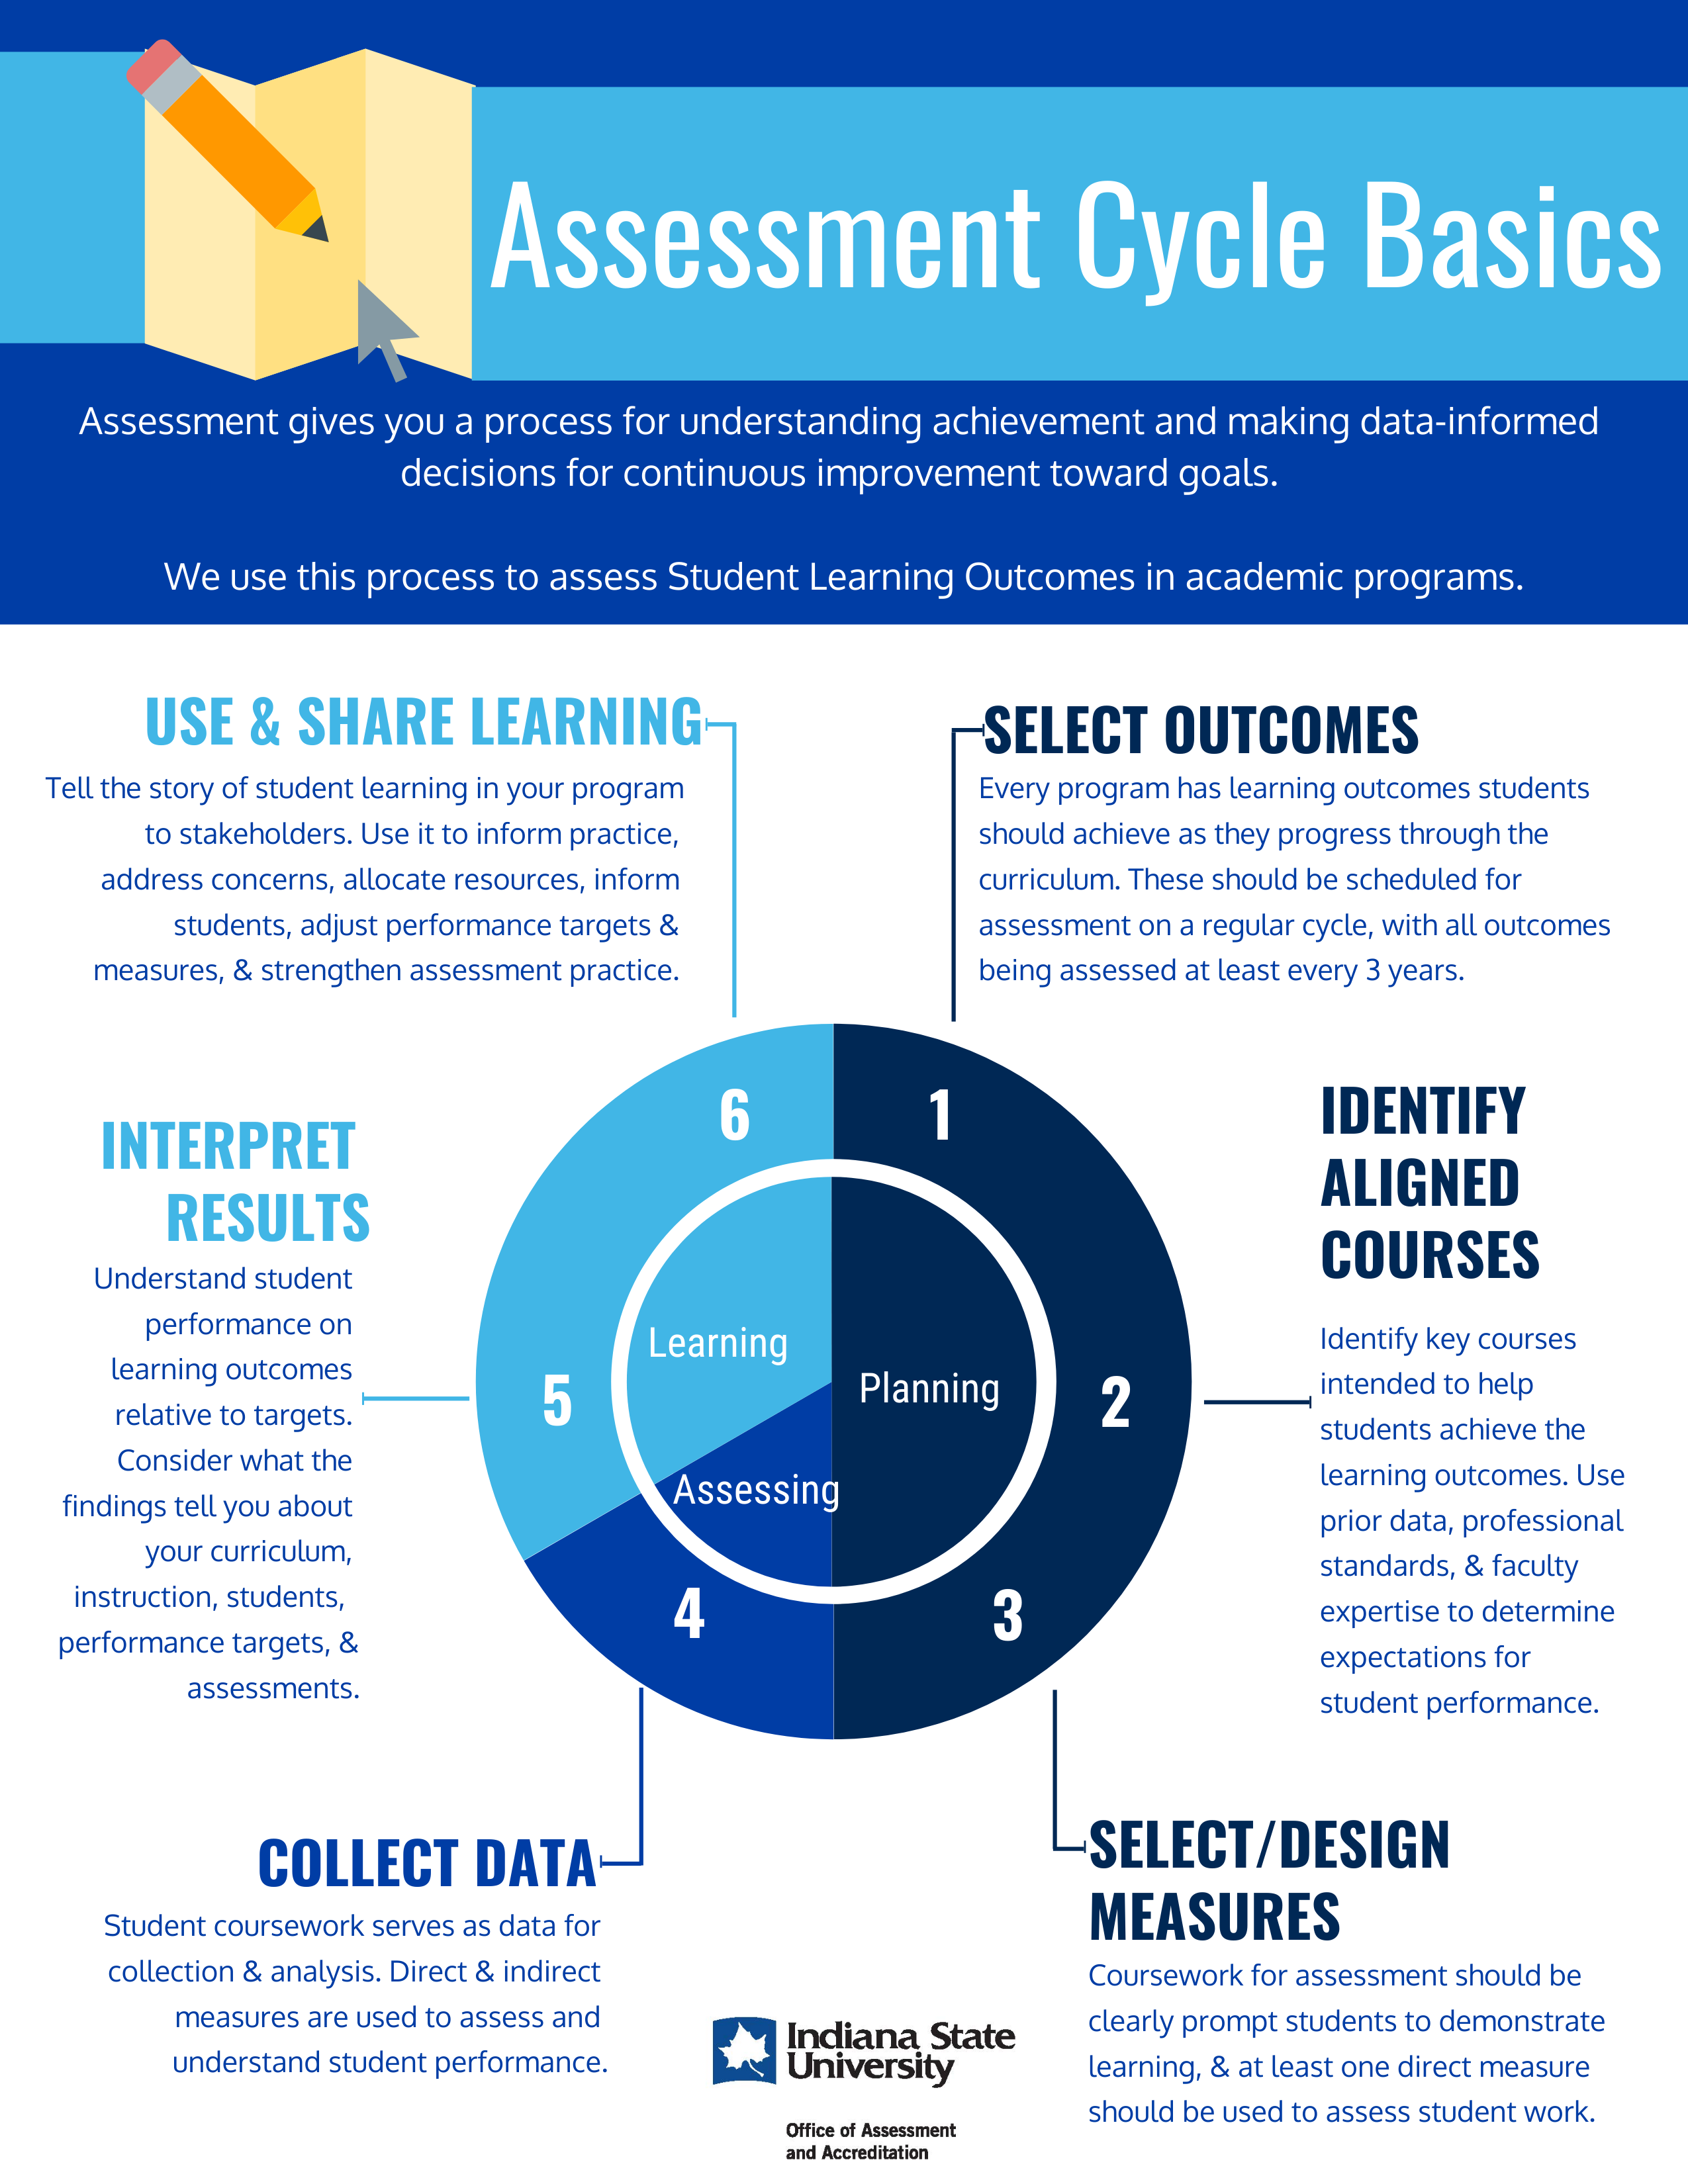 Graphic of the steps in an assessment cycle: 1. Selecting outcomes, 2. Identifying aligned courses, 3. Select/Design measures, 4. Collect data, 5. Interpret results, 6. Use & Share.